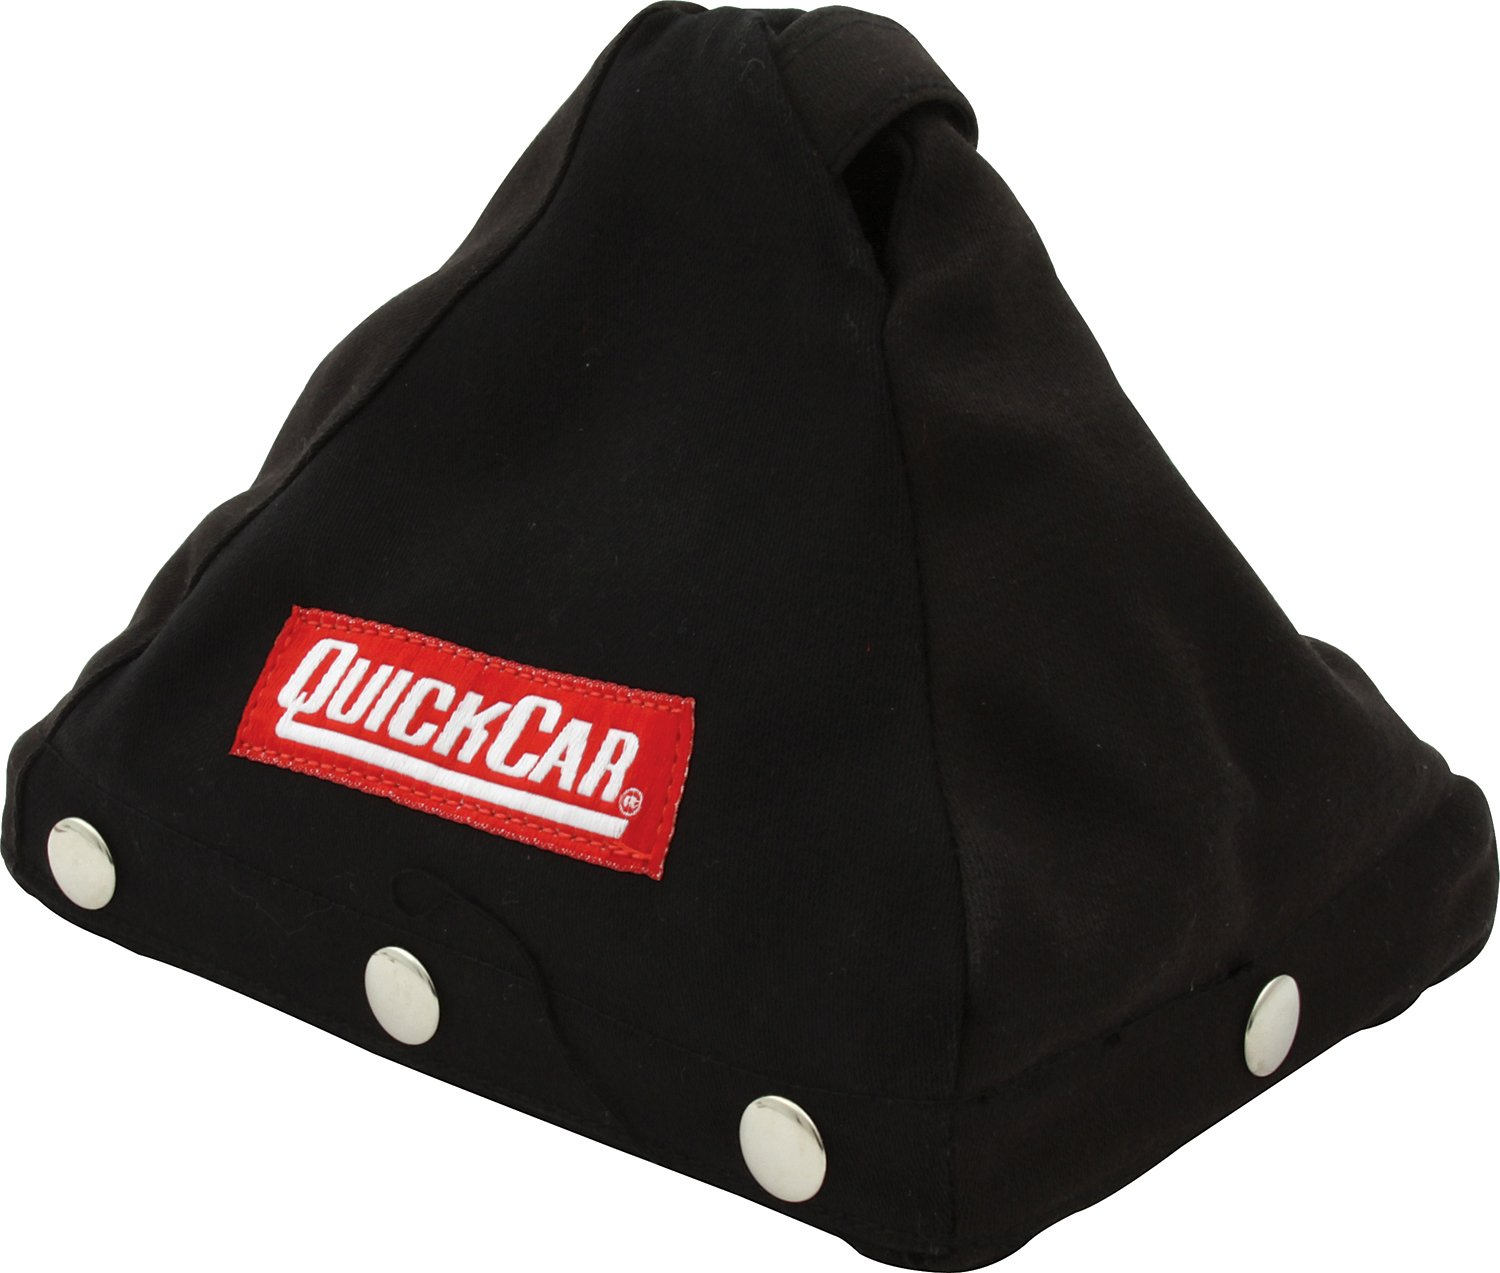 QuickCar Racing Products 60-045 6'' High Fireproof Shifter Boot and Plate Kit